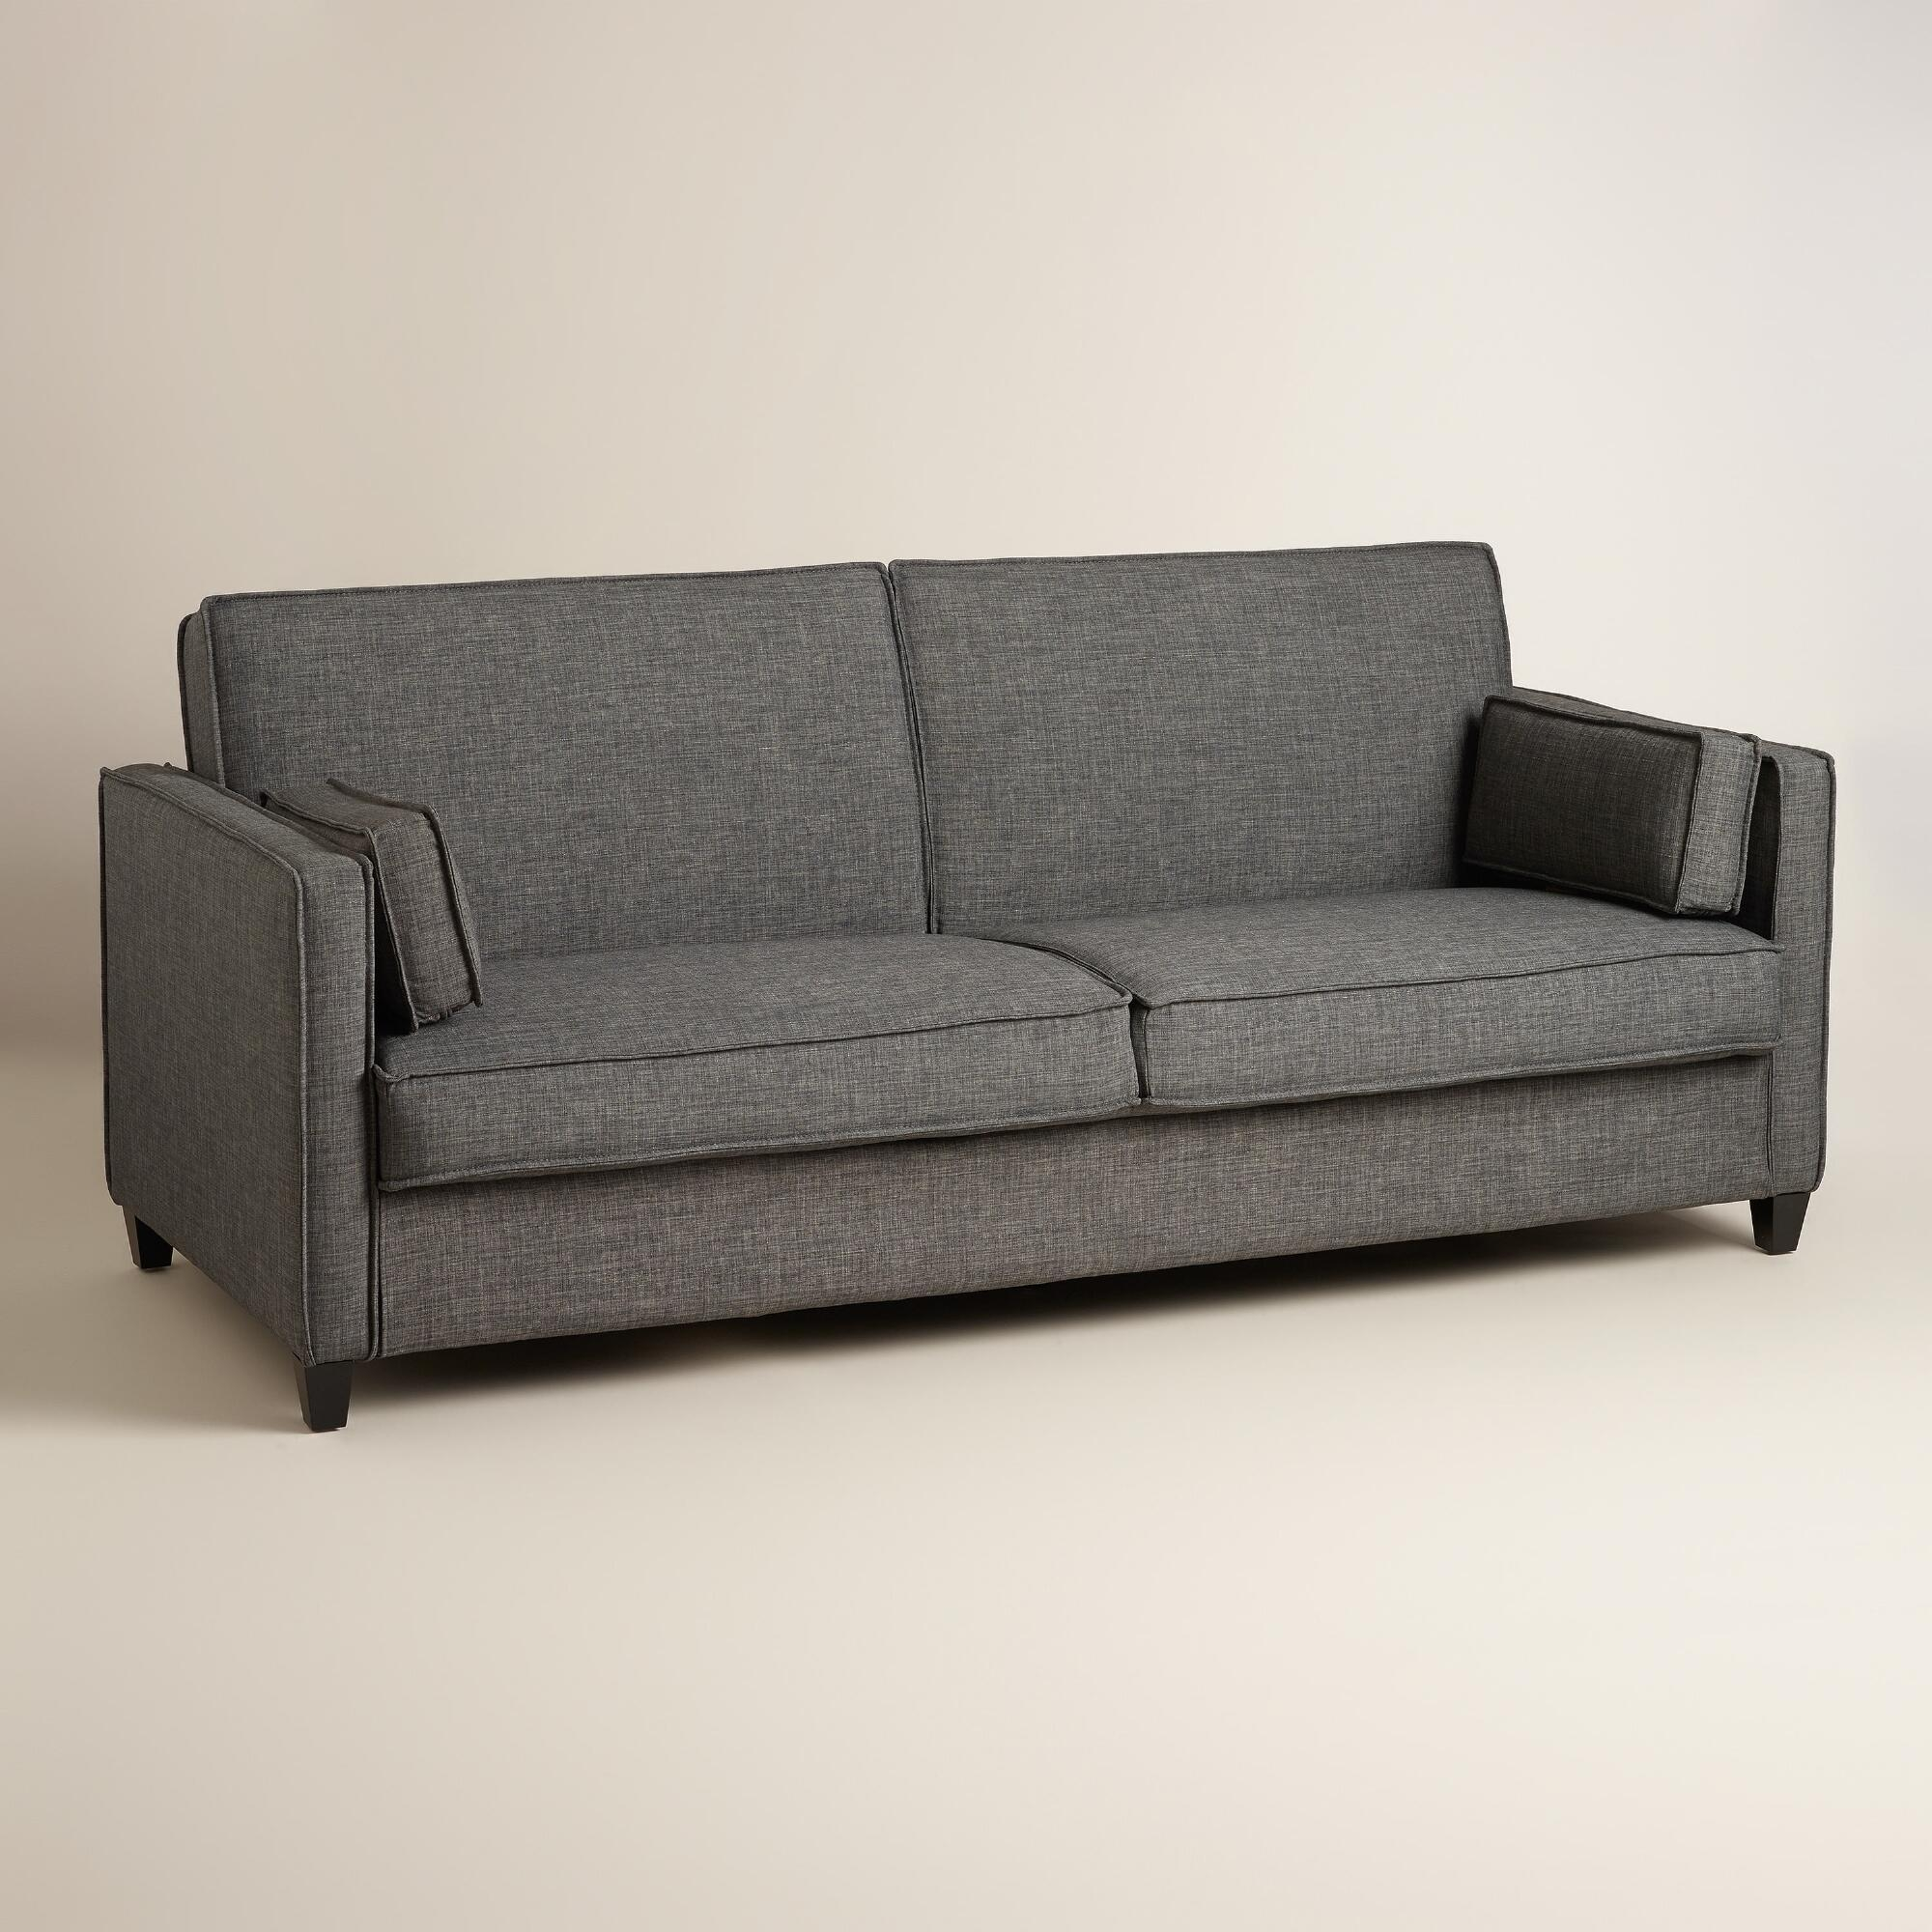 Furniture: Manstad Sofa Bed | Ikea Slipcovered Sectional | Manstad Pertaining To Mini Sofa Beds (View 20 of 20)